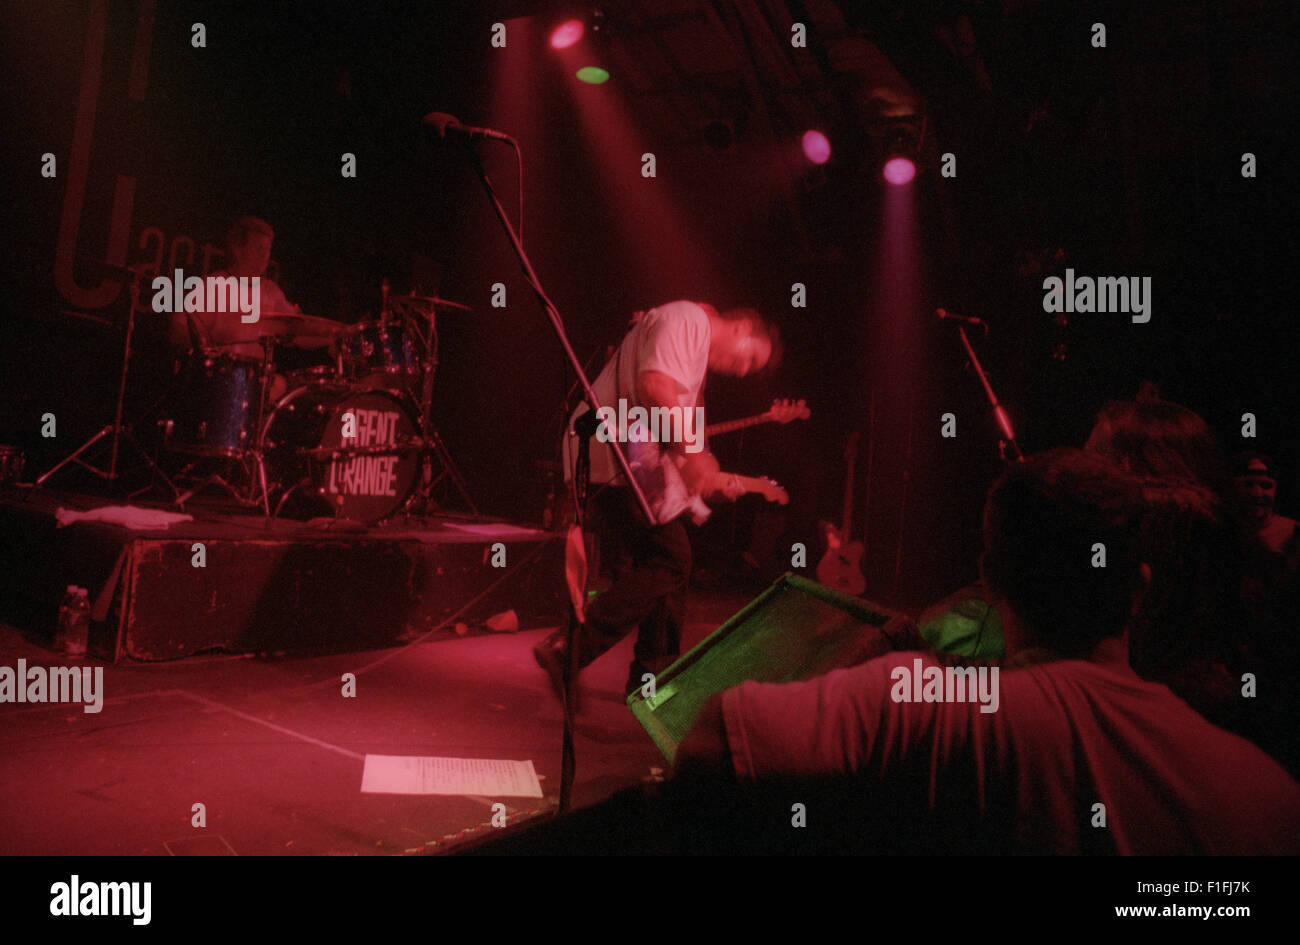 Southern California punk rock band Agent Orange plays a show at the Cactus Club in San Jose, California during 1995. - Stock Image